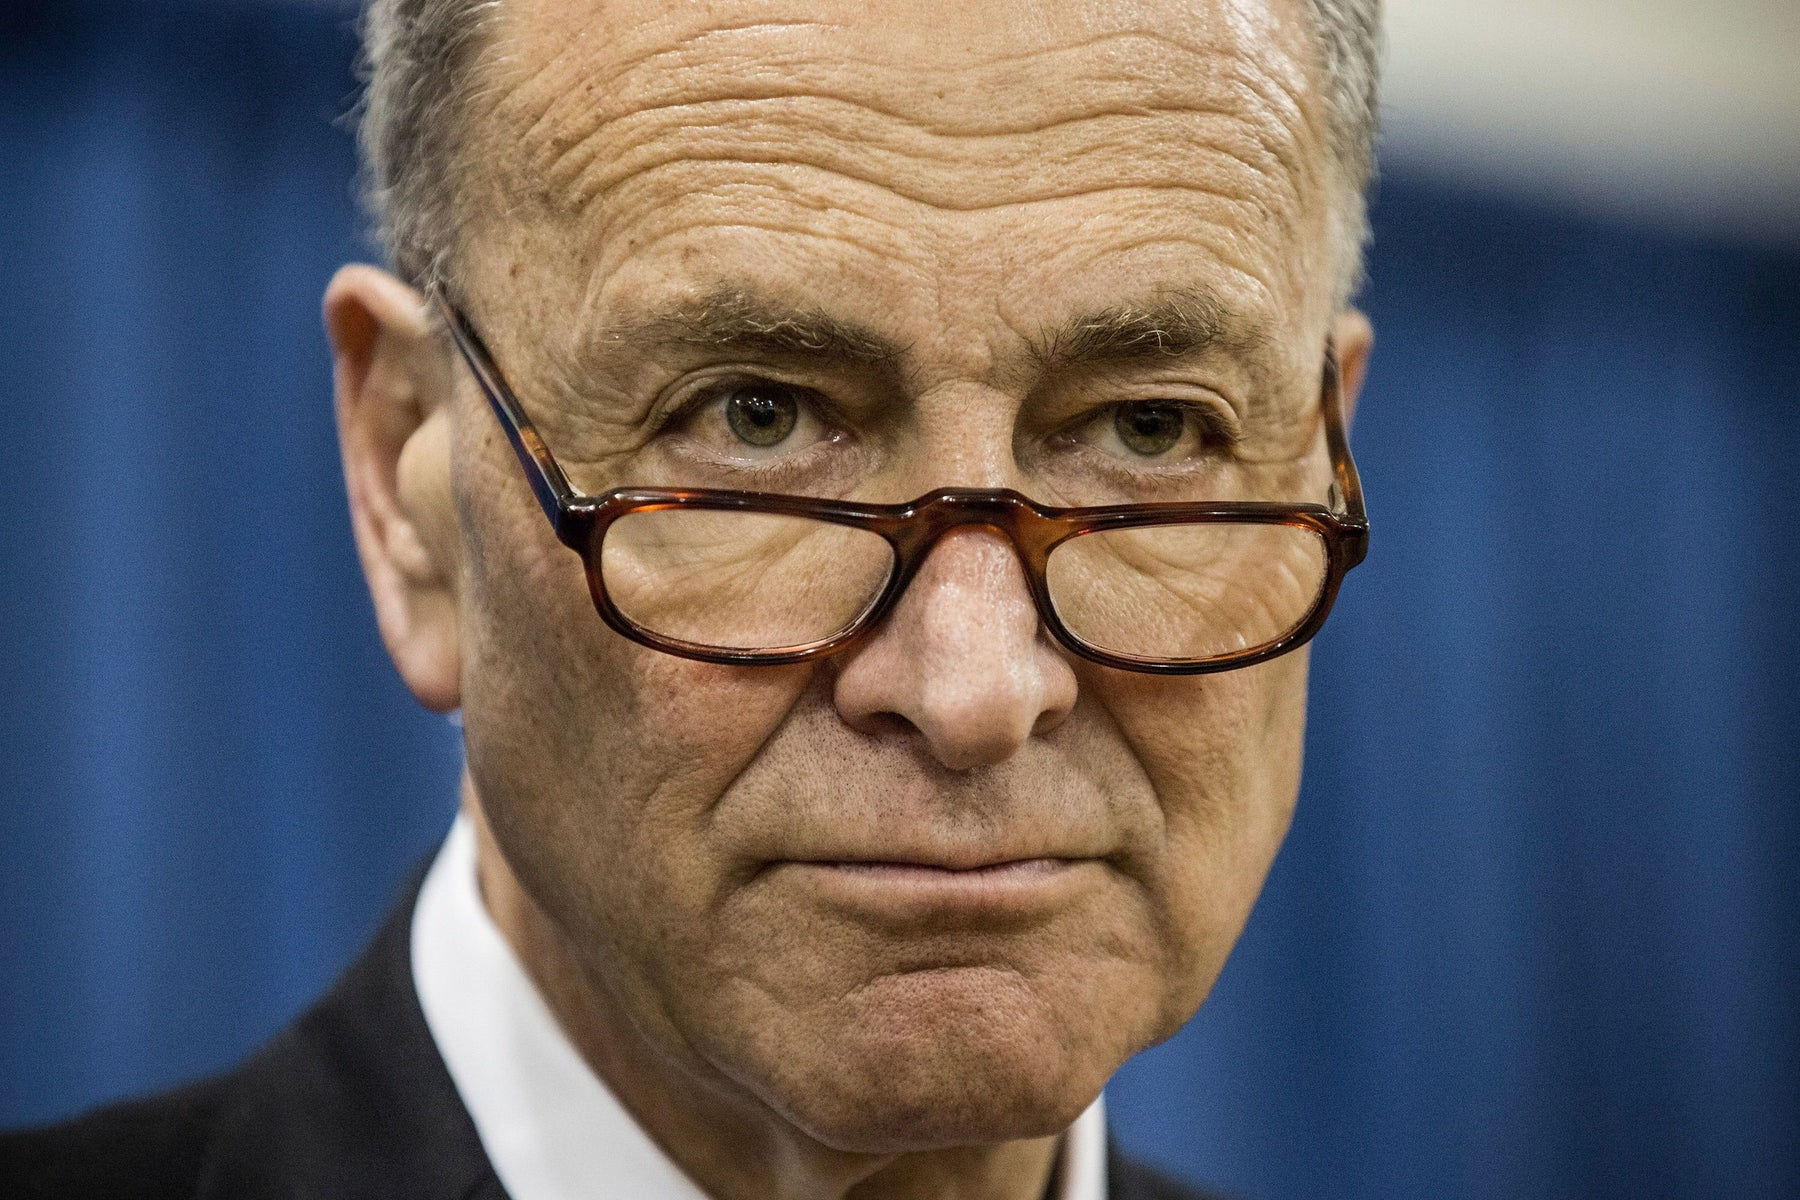 Legalizing marijuana while blasting vaping, is Sen. Schumer a big, ole hypocrite?